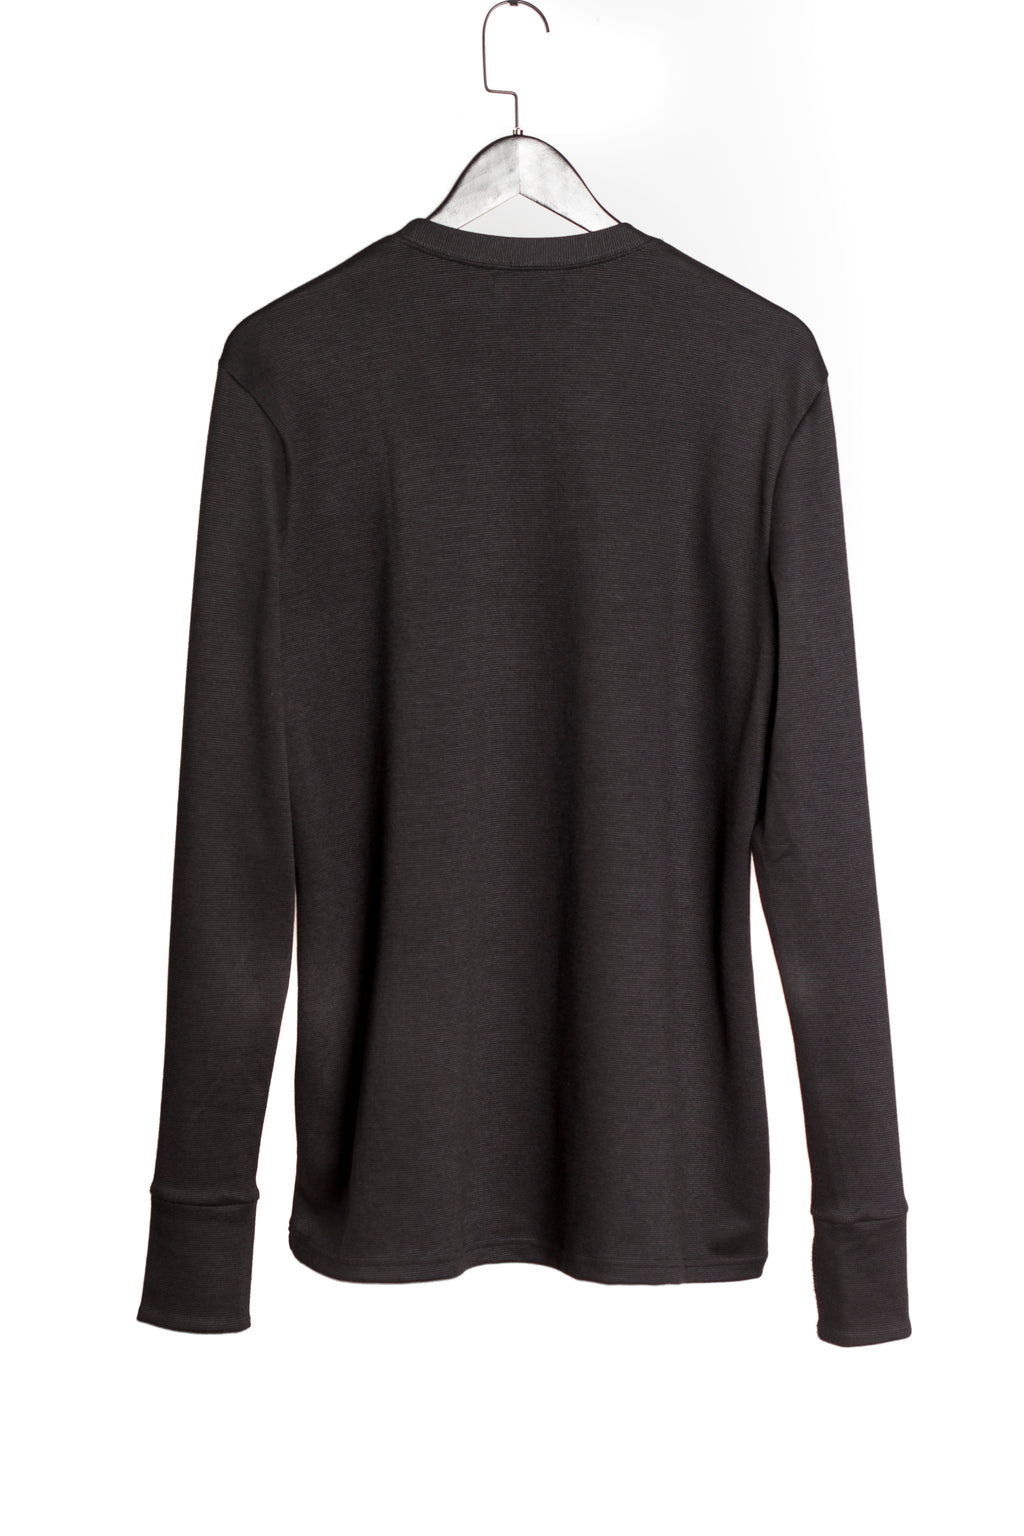 LONG SLEEVE ELONGATED TEE